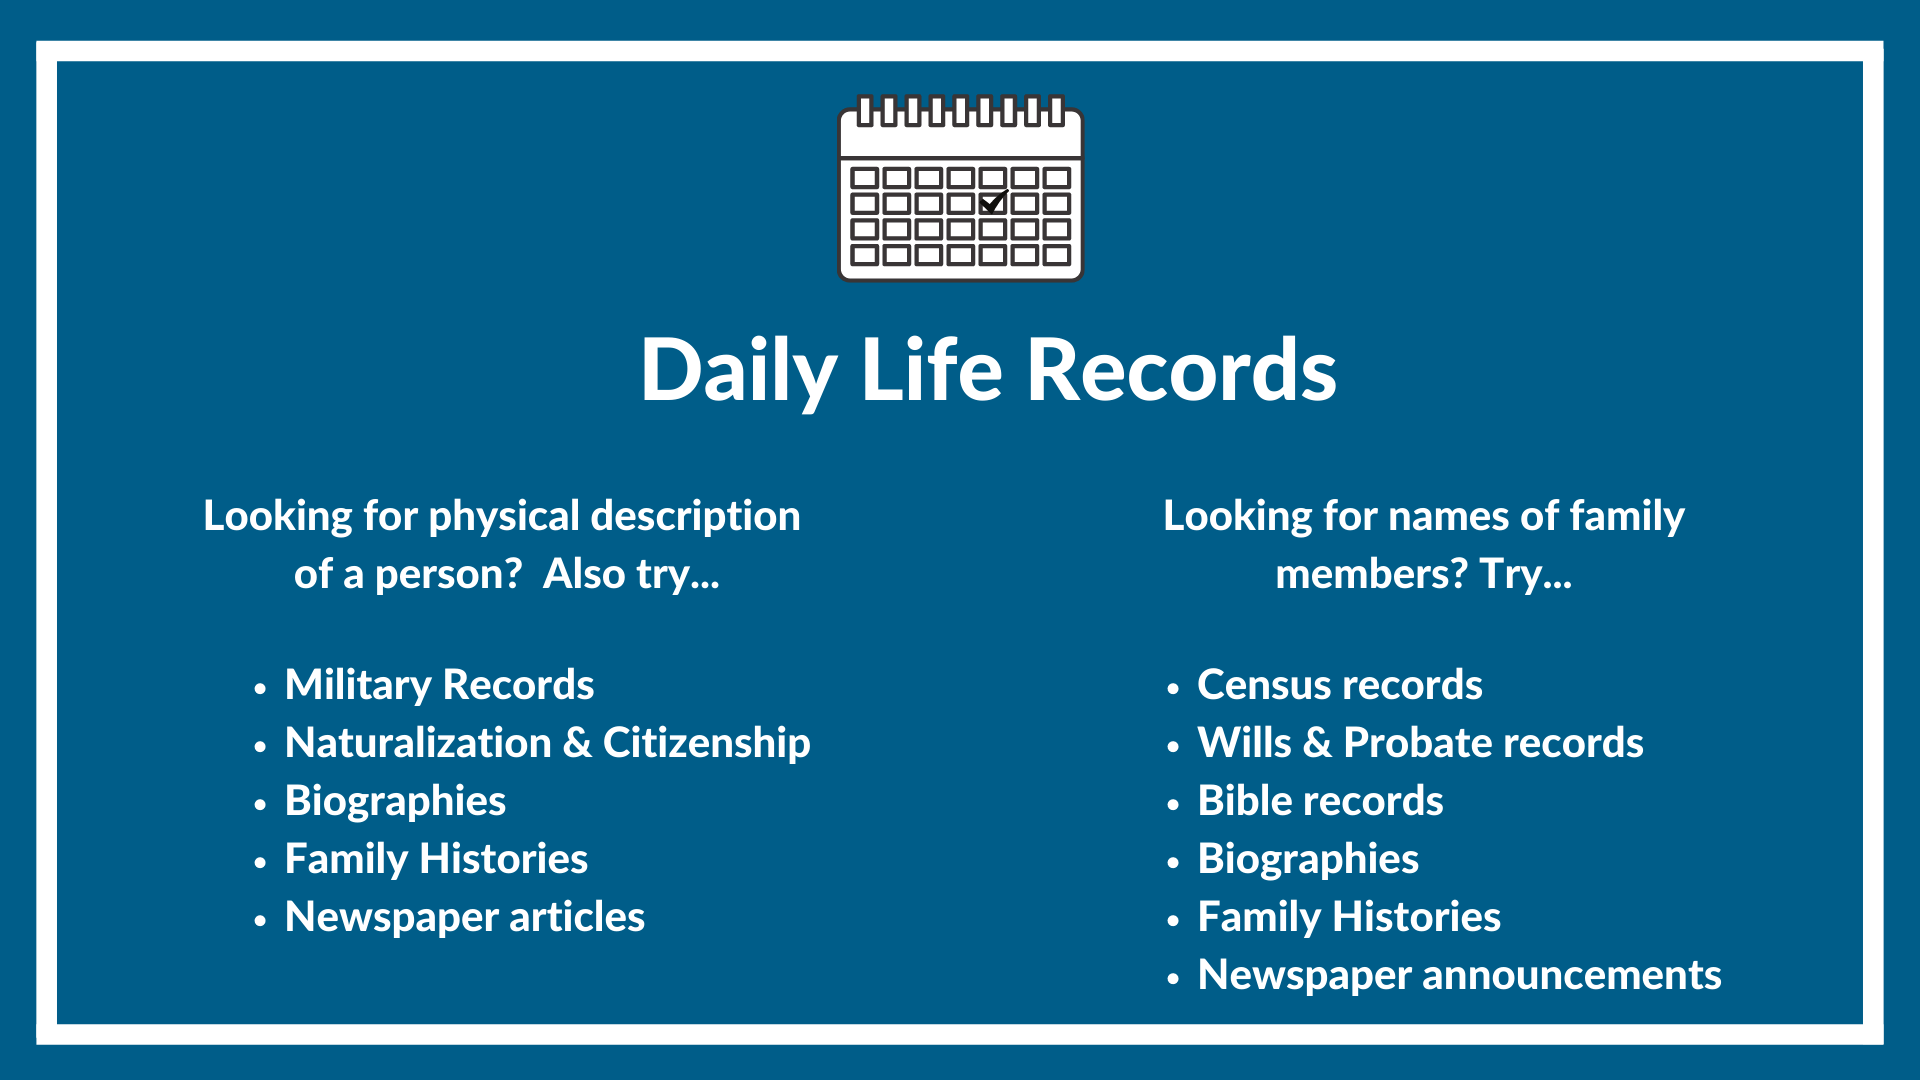 Daily Life records, looking for family members...try these records, looking for description...try these records